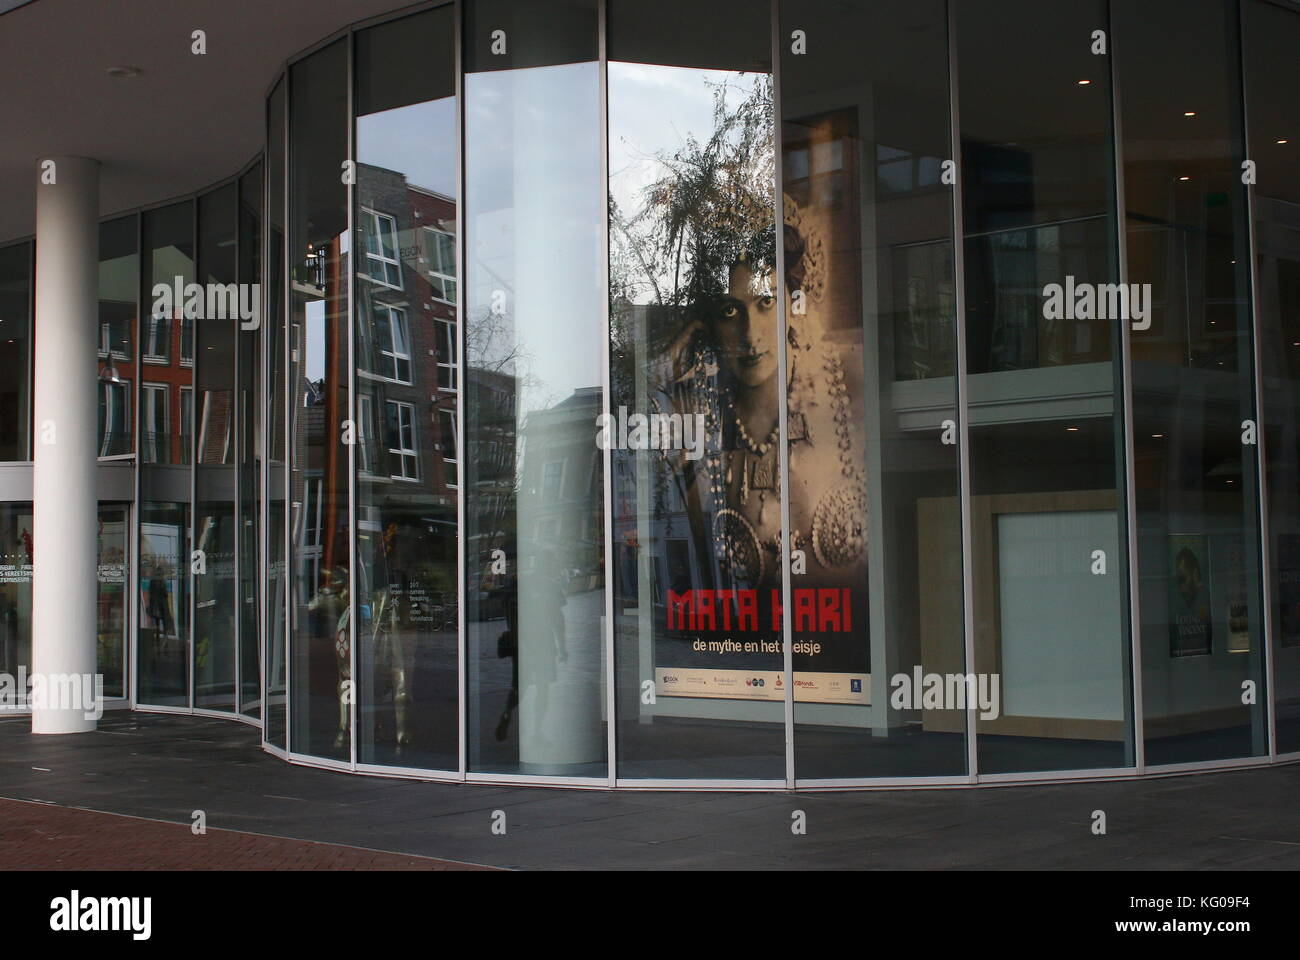 Mata Hari Exhibition poster at the New Frisian Museum (Frysk Museum) building in Leeuwarden, The Netherlands. - Stock Image